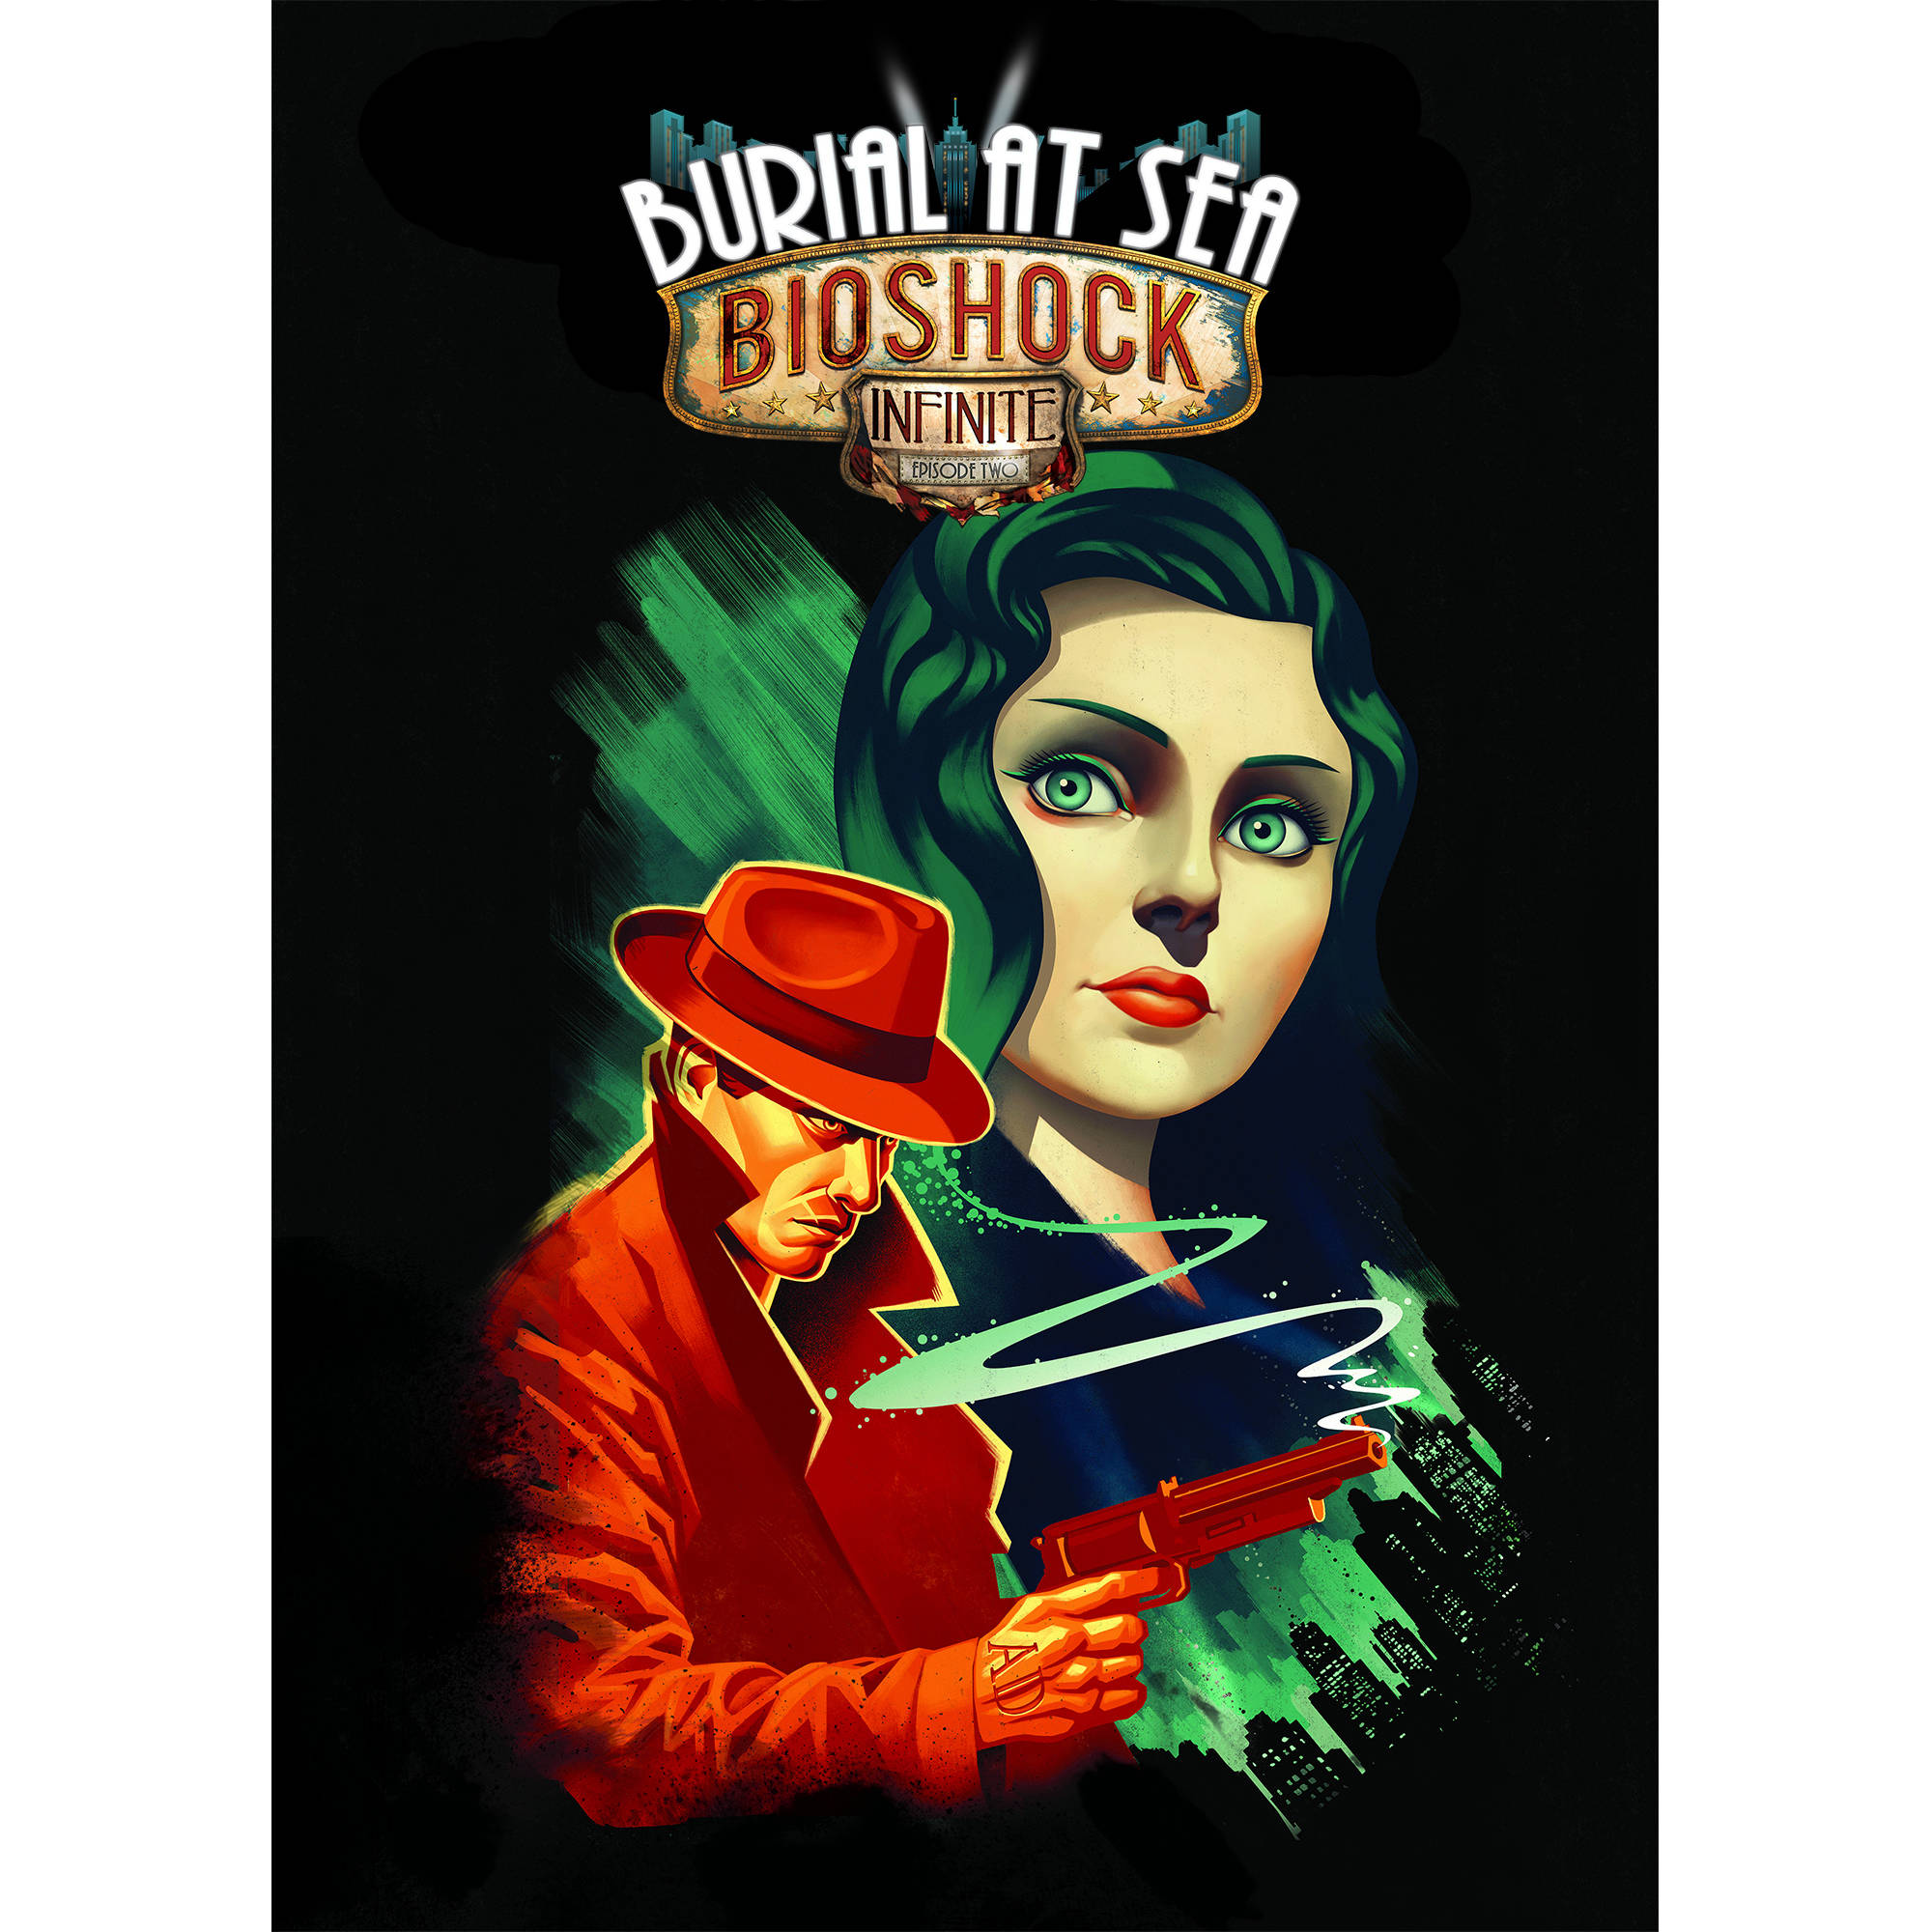 Image of BioShock Infinite: Burial at Sea Episode 2 (PC) (Digital Download)